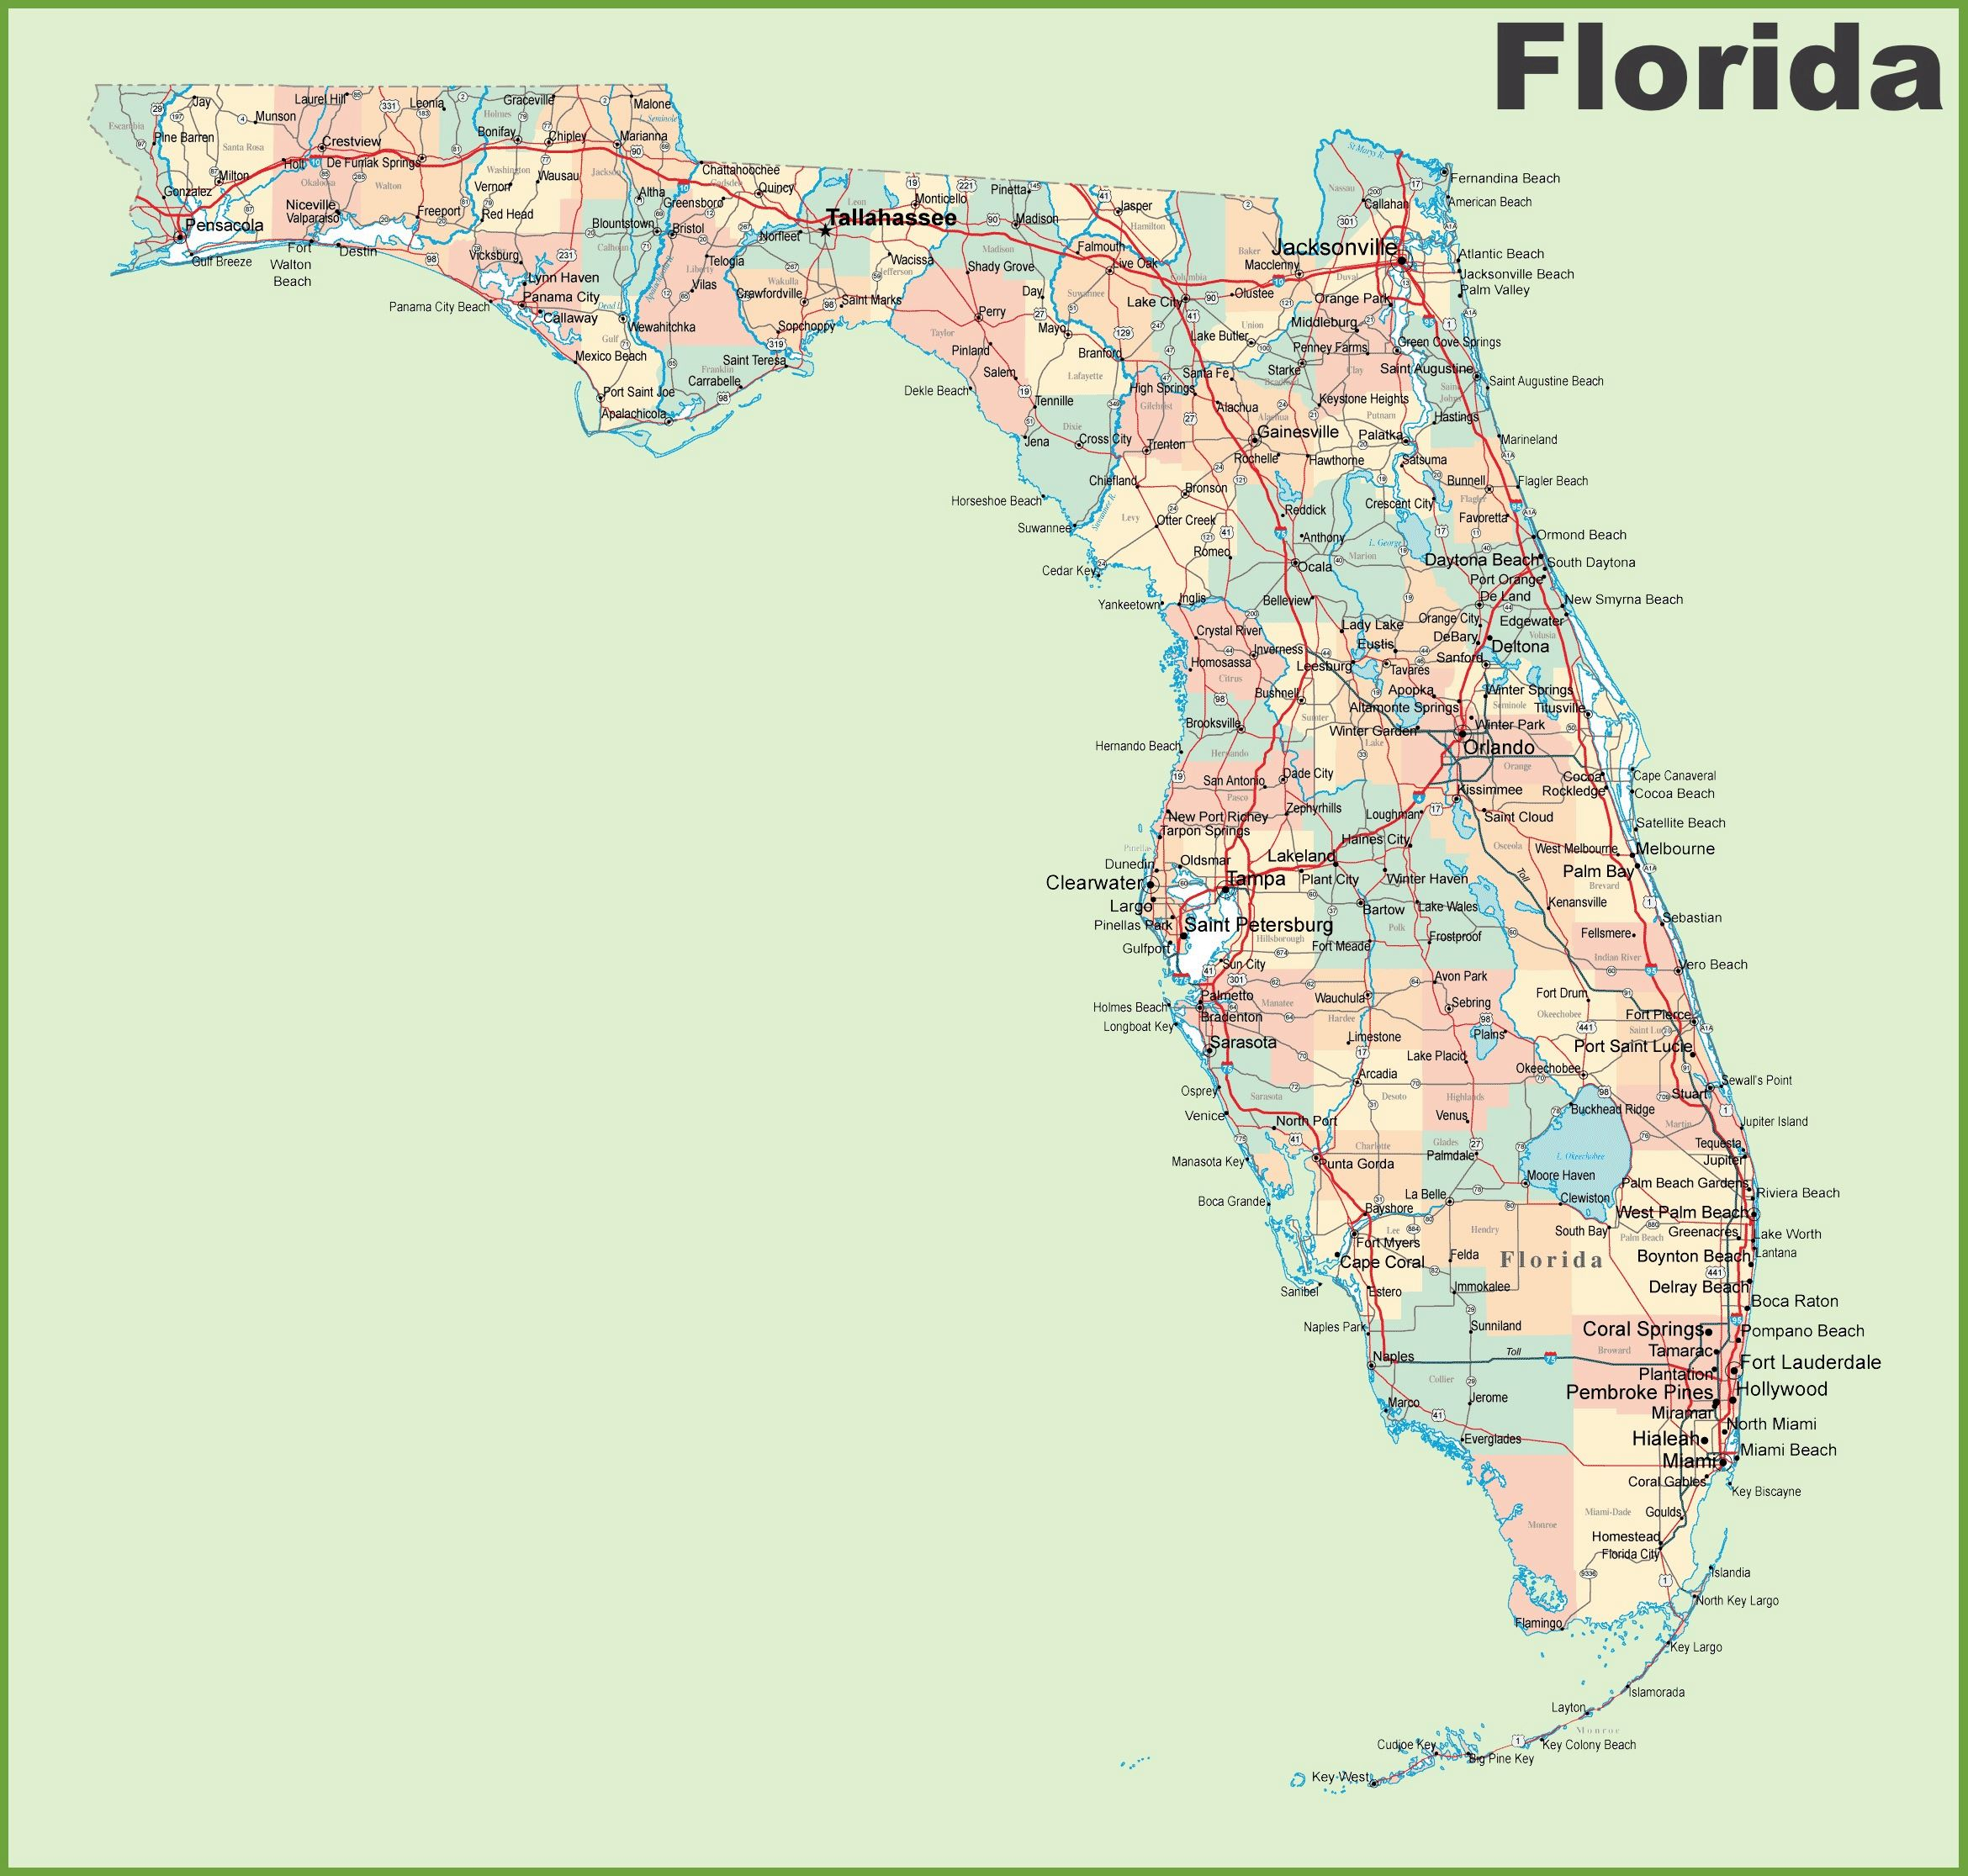 Large Florida Maps For Free Download And Print   High-Resolution And - Best Florida Gulf Coast Beaches Map